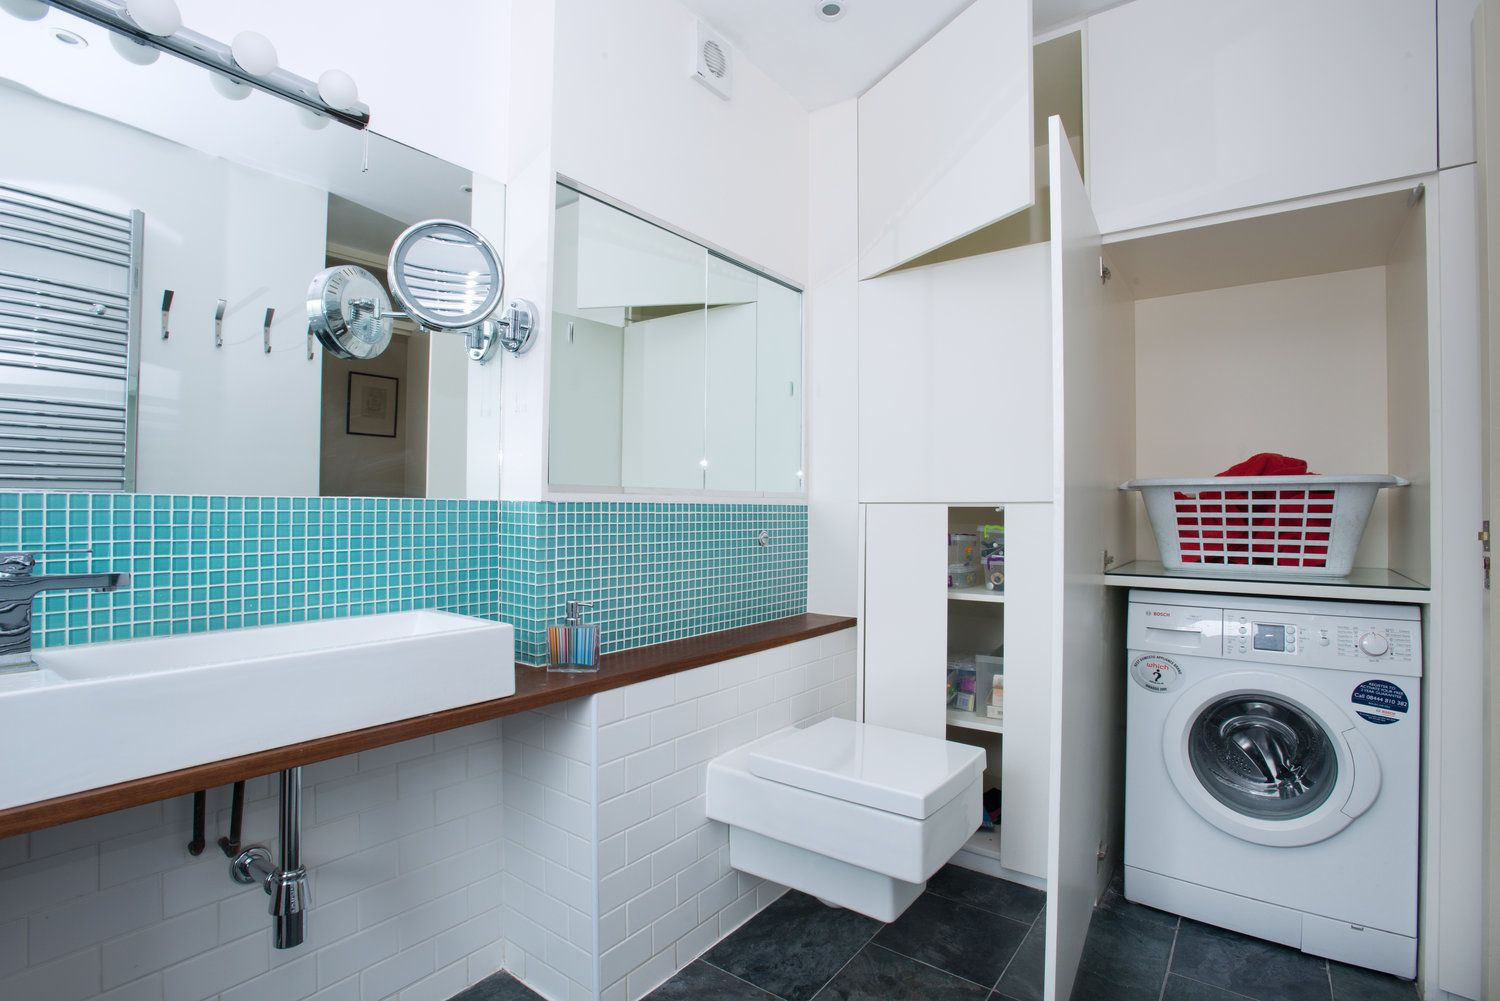 Bespoke laundry storage for this Barbican bathroom | Interiors ...